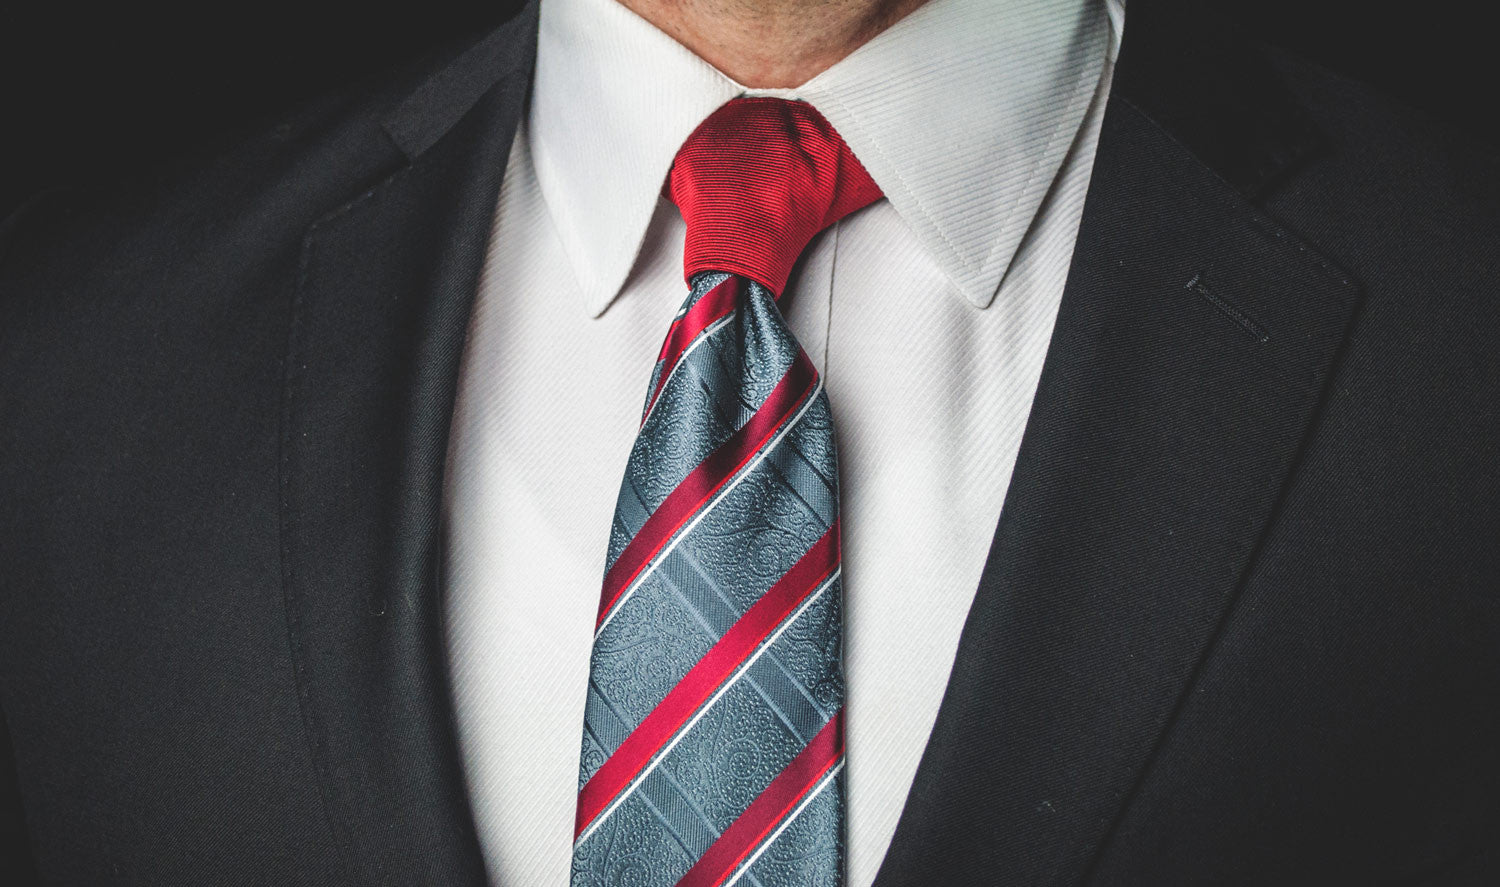 The Red Proper Knot™